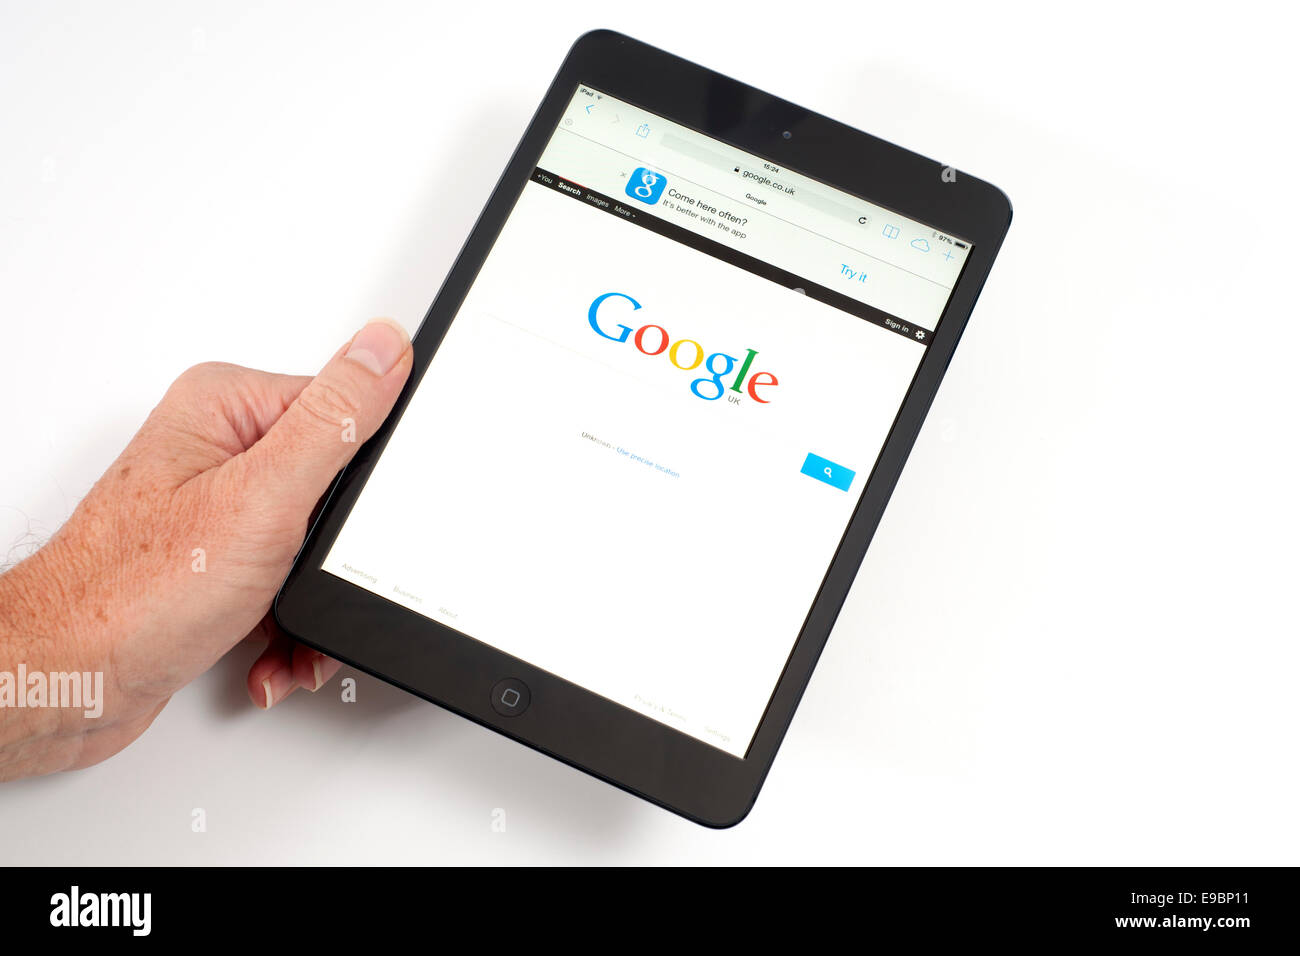 iPad mini with Google search engine page on screen - Stock Image